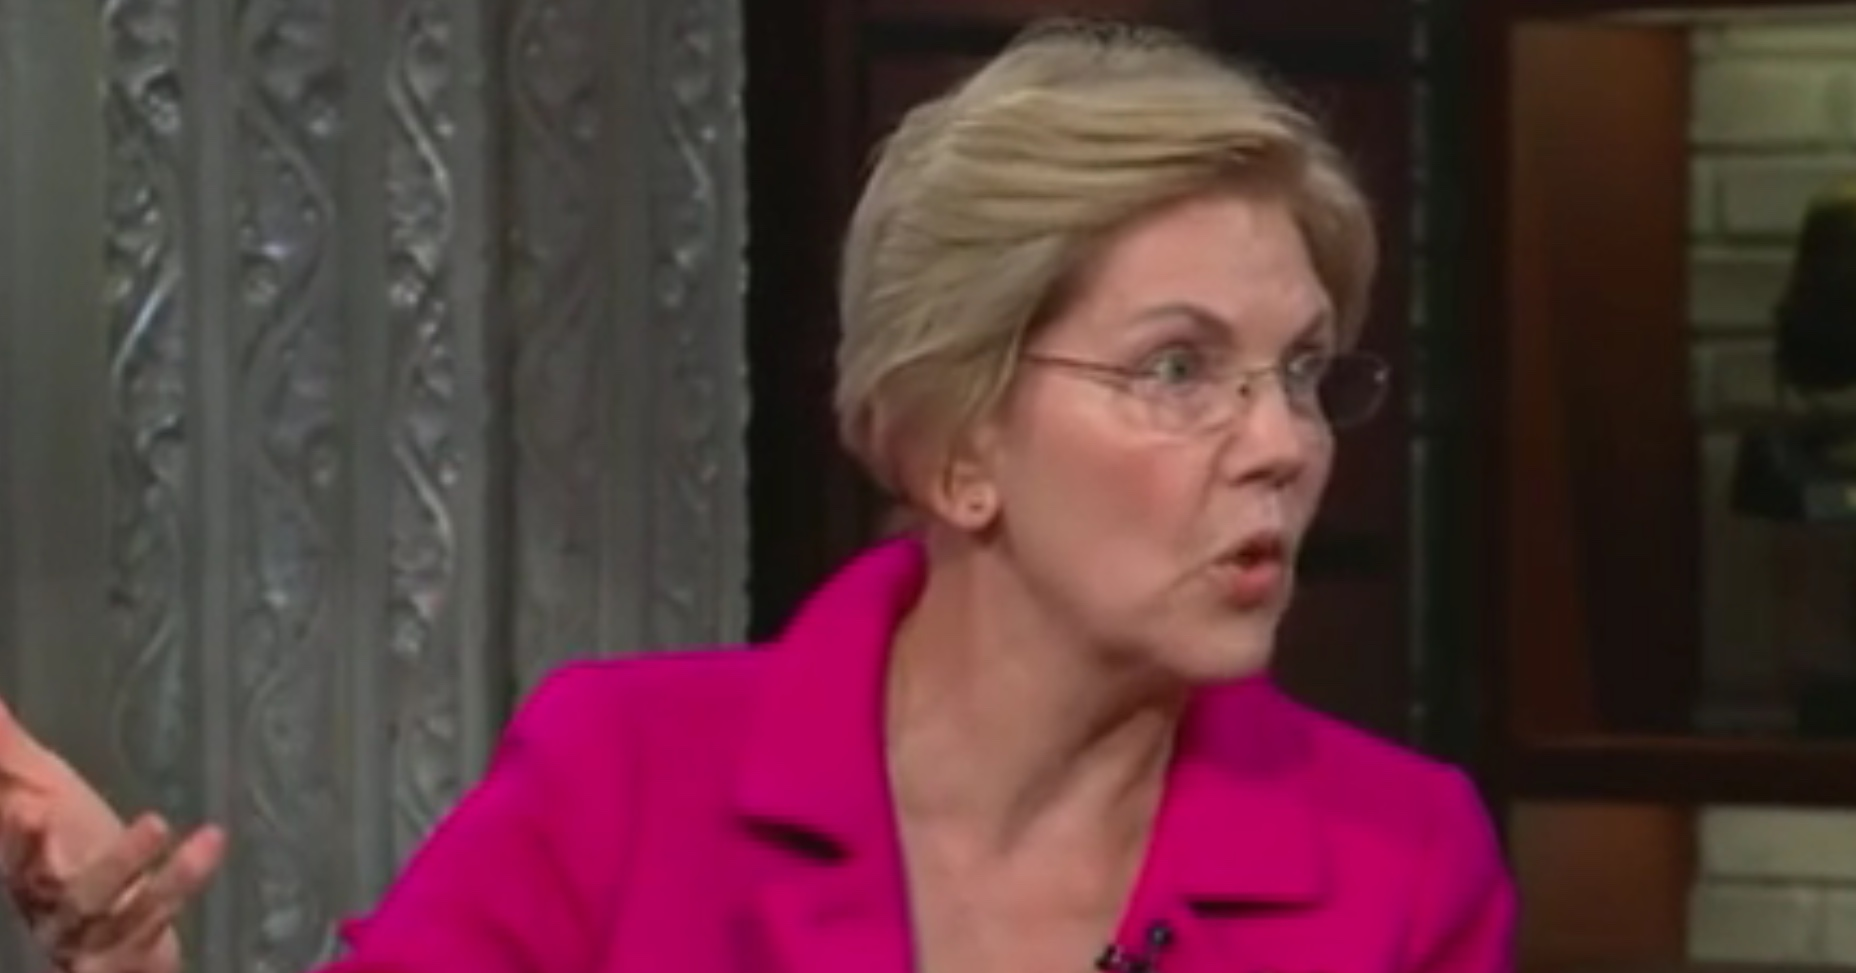 Warren Struggles To Answer When Pressed By Colbert On Whether 'Medicare for All' Will Raise Taxes On Middle Class